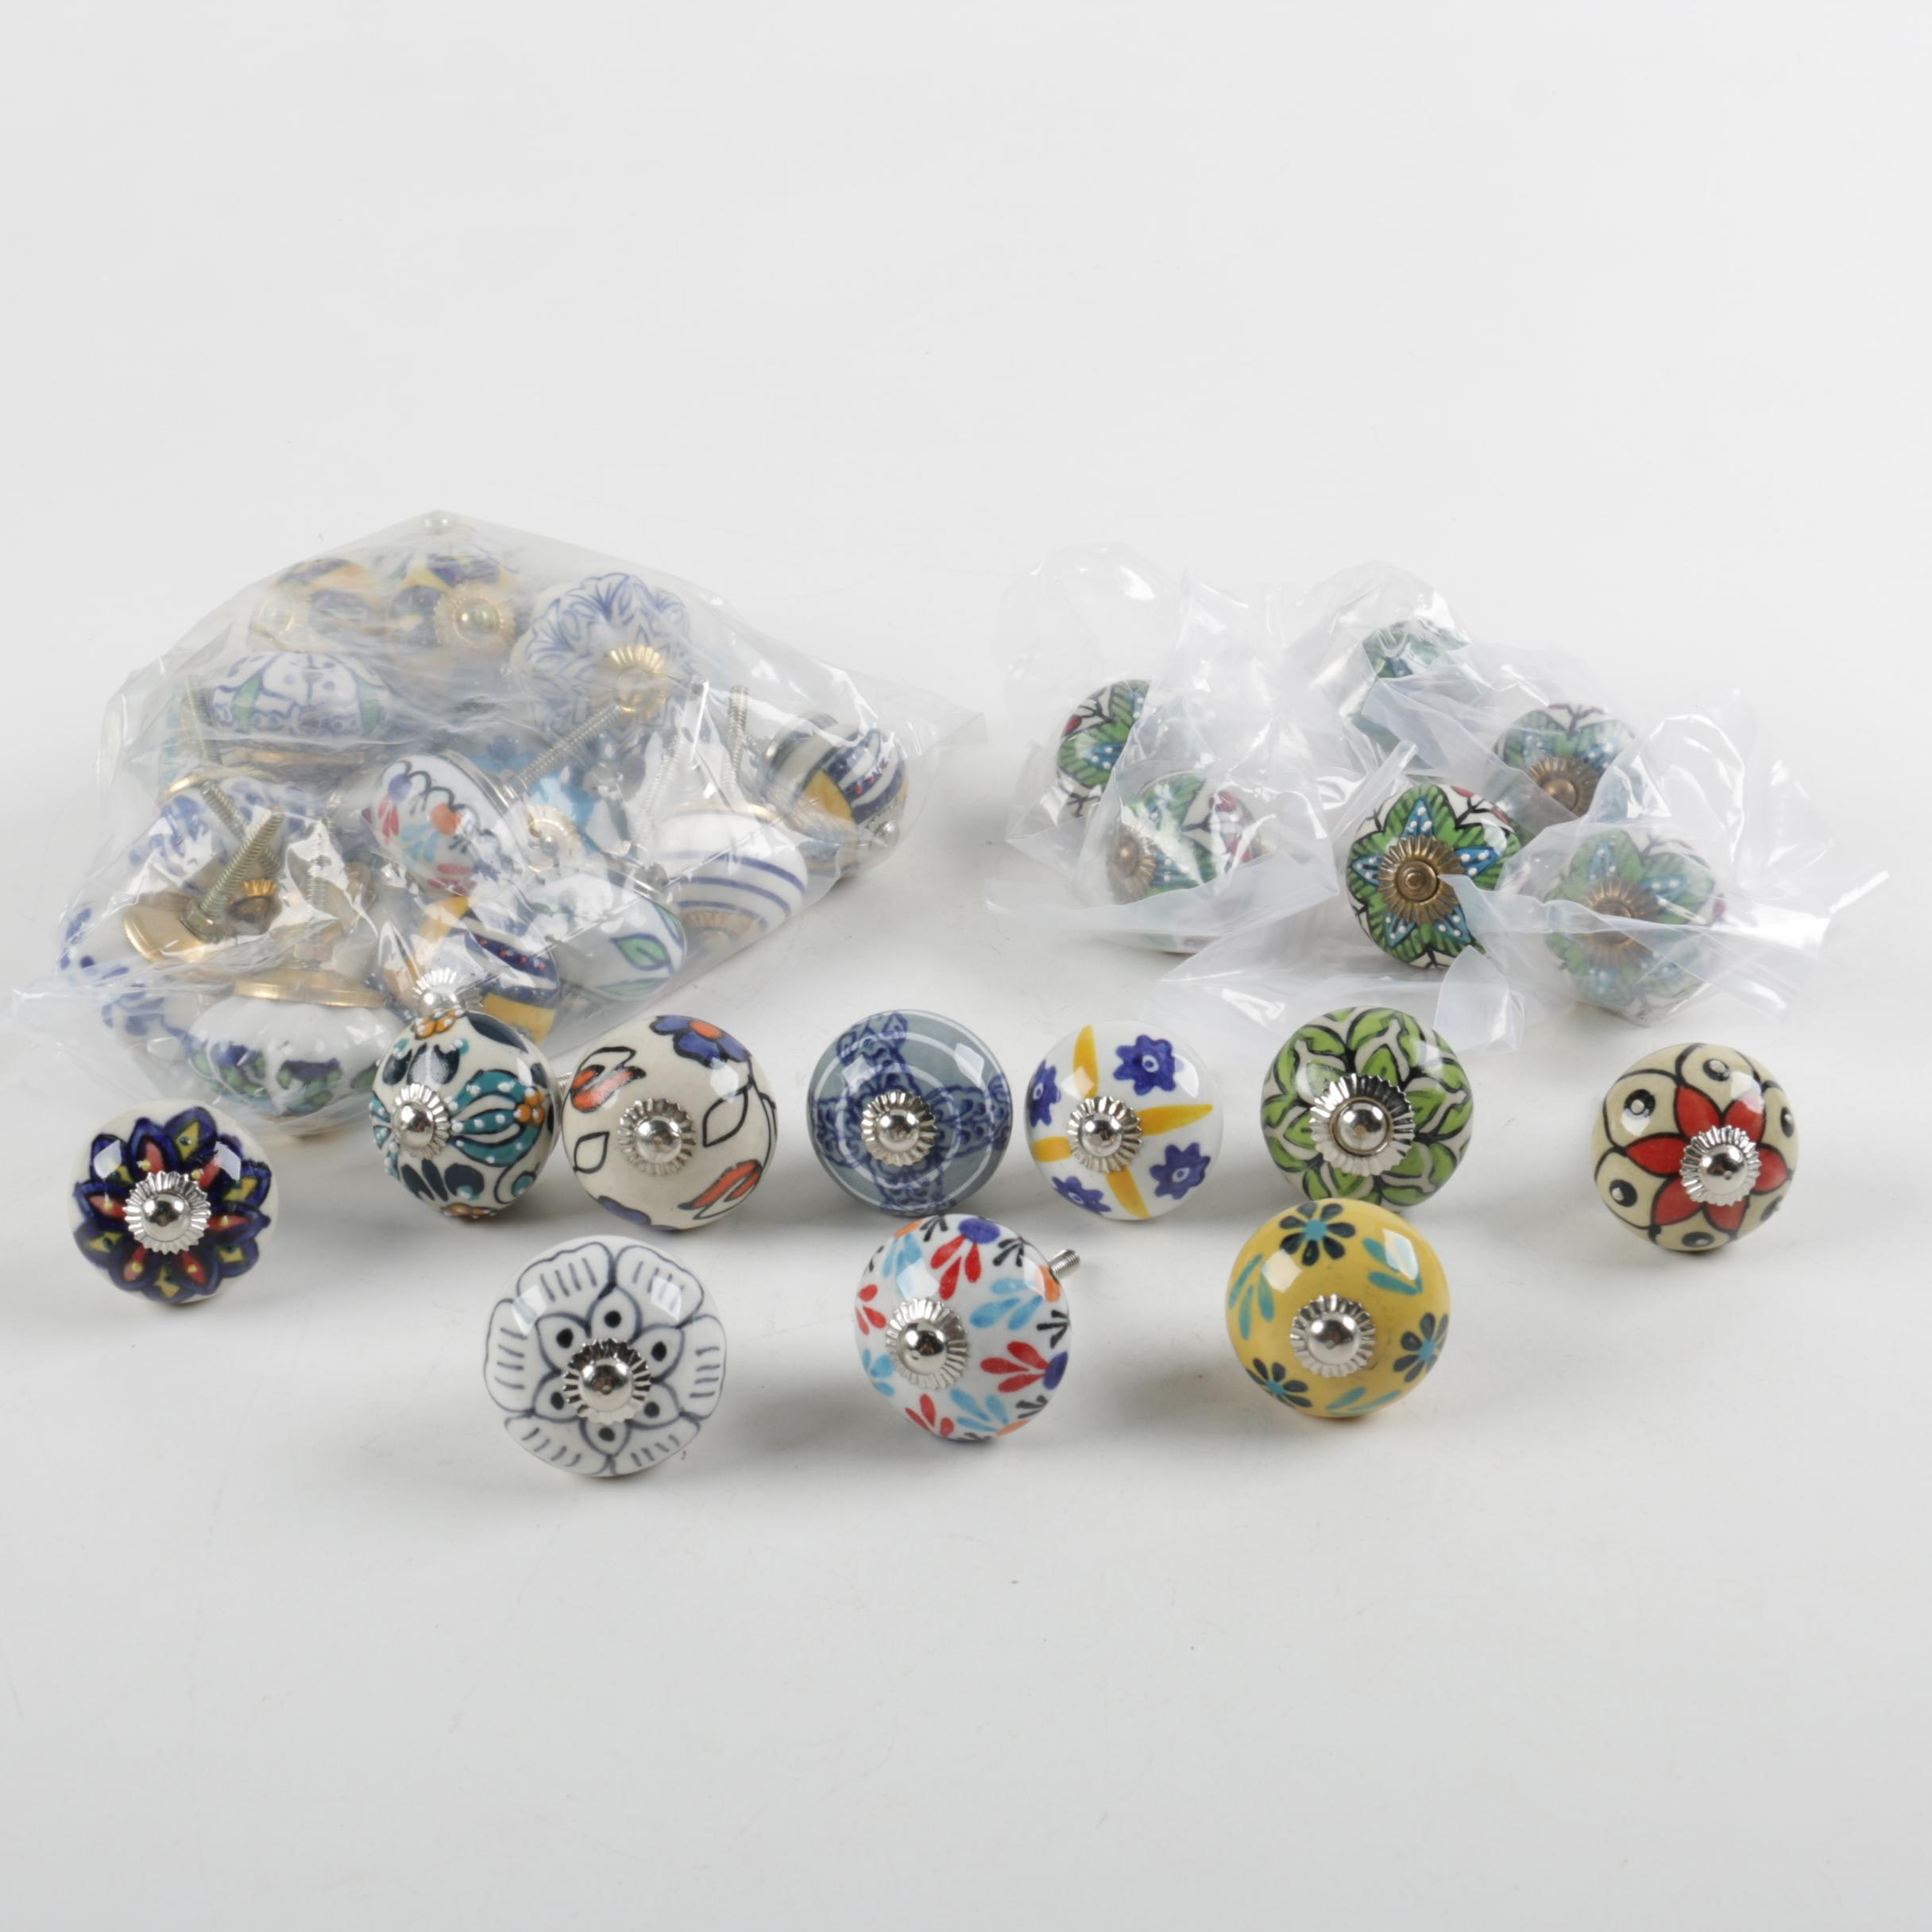 Collection of Hand-Painted Ceramic Knobs